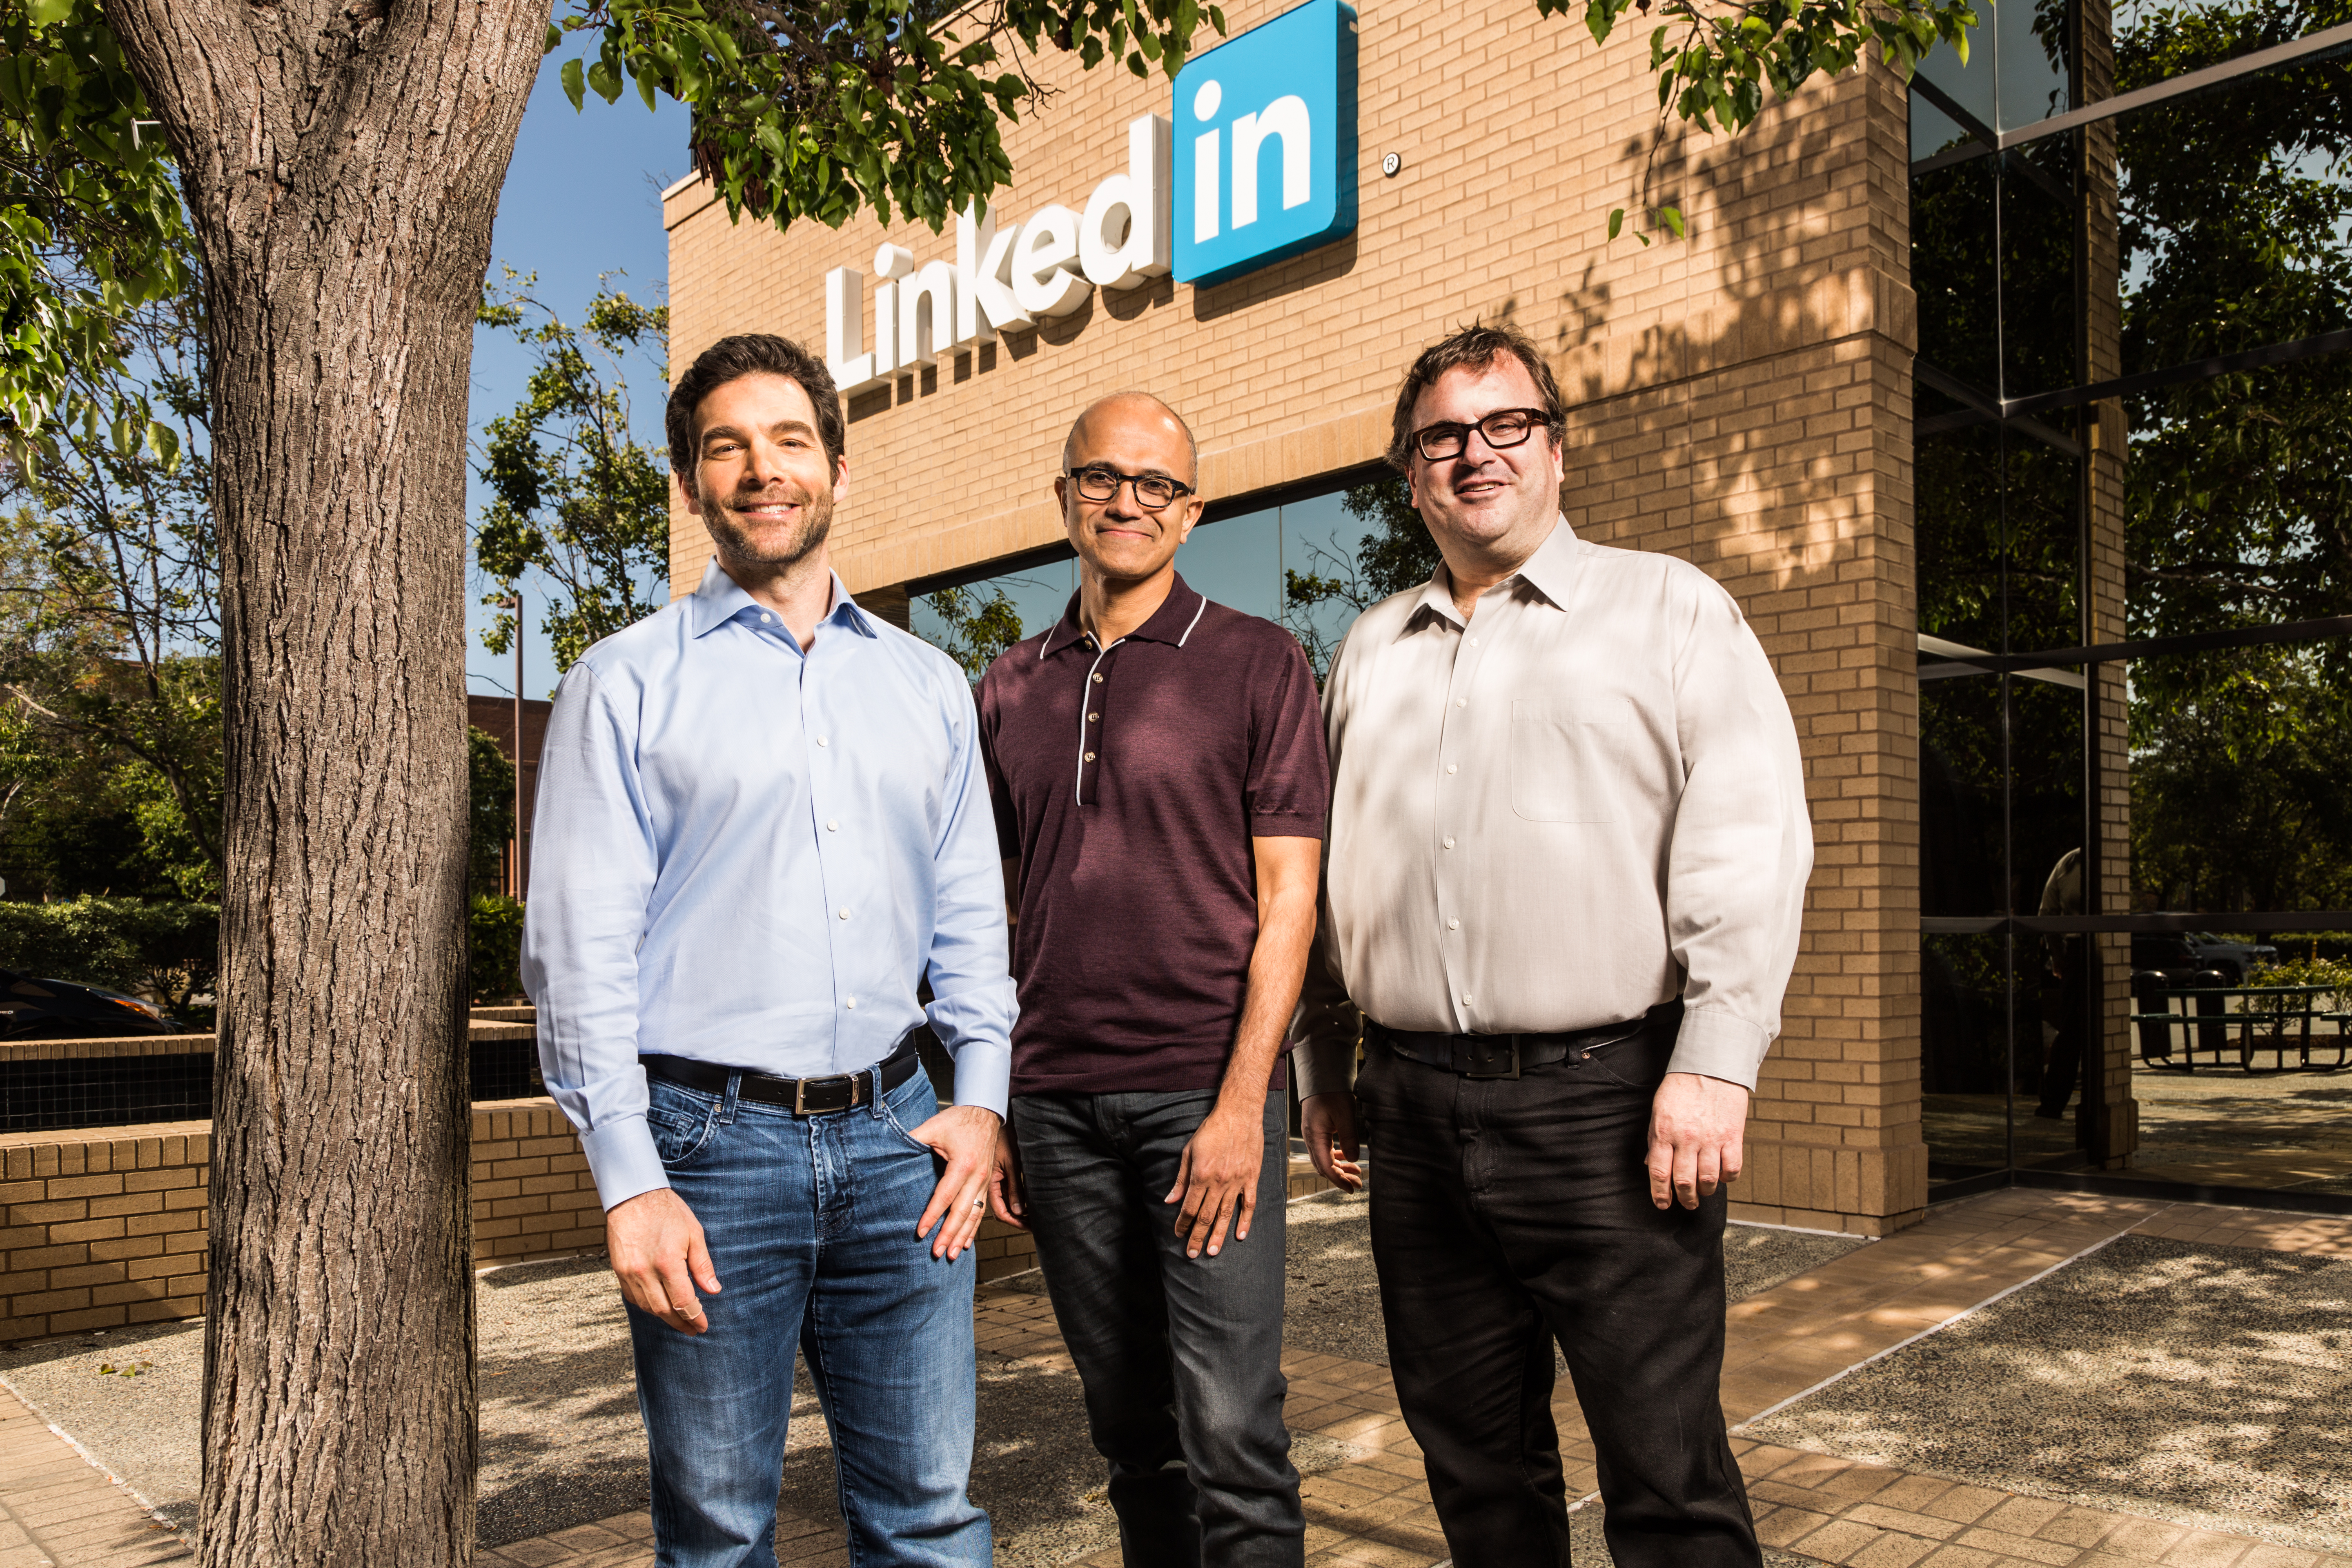 Microsoft Corp. and LinkedIn Corporation on Monday announced they have entered into a definitive agreement under which Microsoft will acquire LinkedIn for $196 per share in an all-cash transaction valued at $26.2 billion, inclusive of LinkedIn's net cash. LinkedIn will retain its distinct brand, culture and independence. Jeff Weiner will remain CEO of LinkedIn, reporting to Satya Nadella, CEO of Microsoft. Reid Hoffman, chairman of the board, co-founder and controlling shareholder of LinkedIn, and Weiner both fully support this transaction. The transaction is expected to close this calendar year.